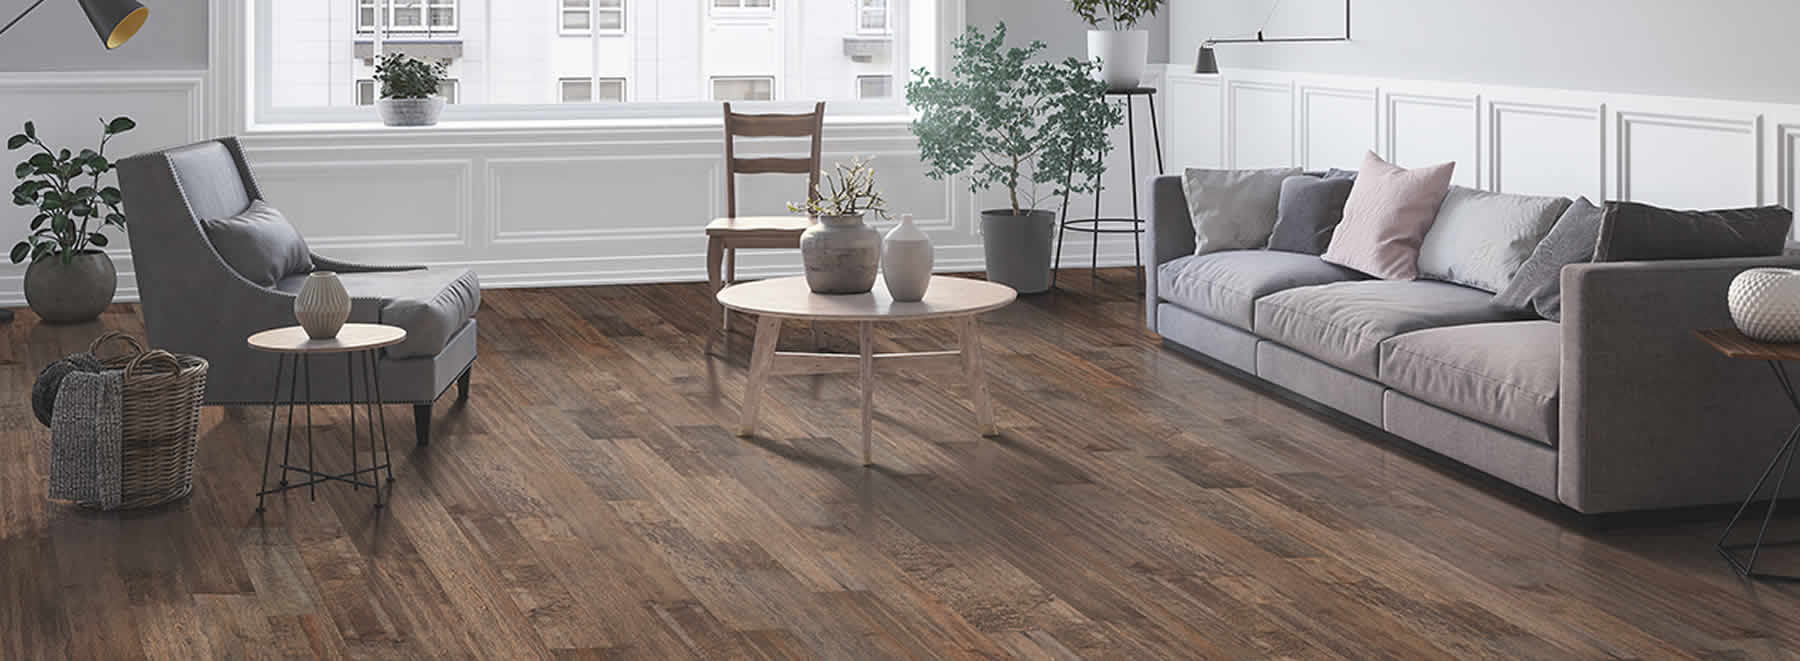 Numerous choices of wood flooring at Ramsey Flooring.